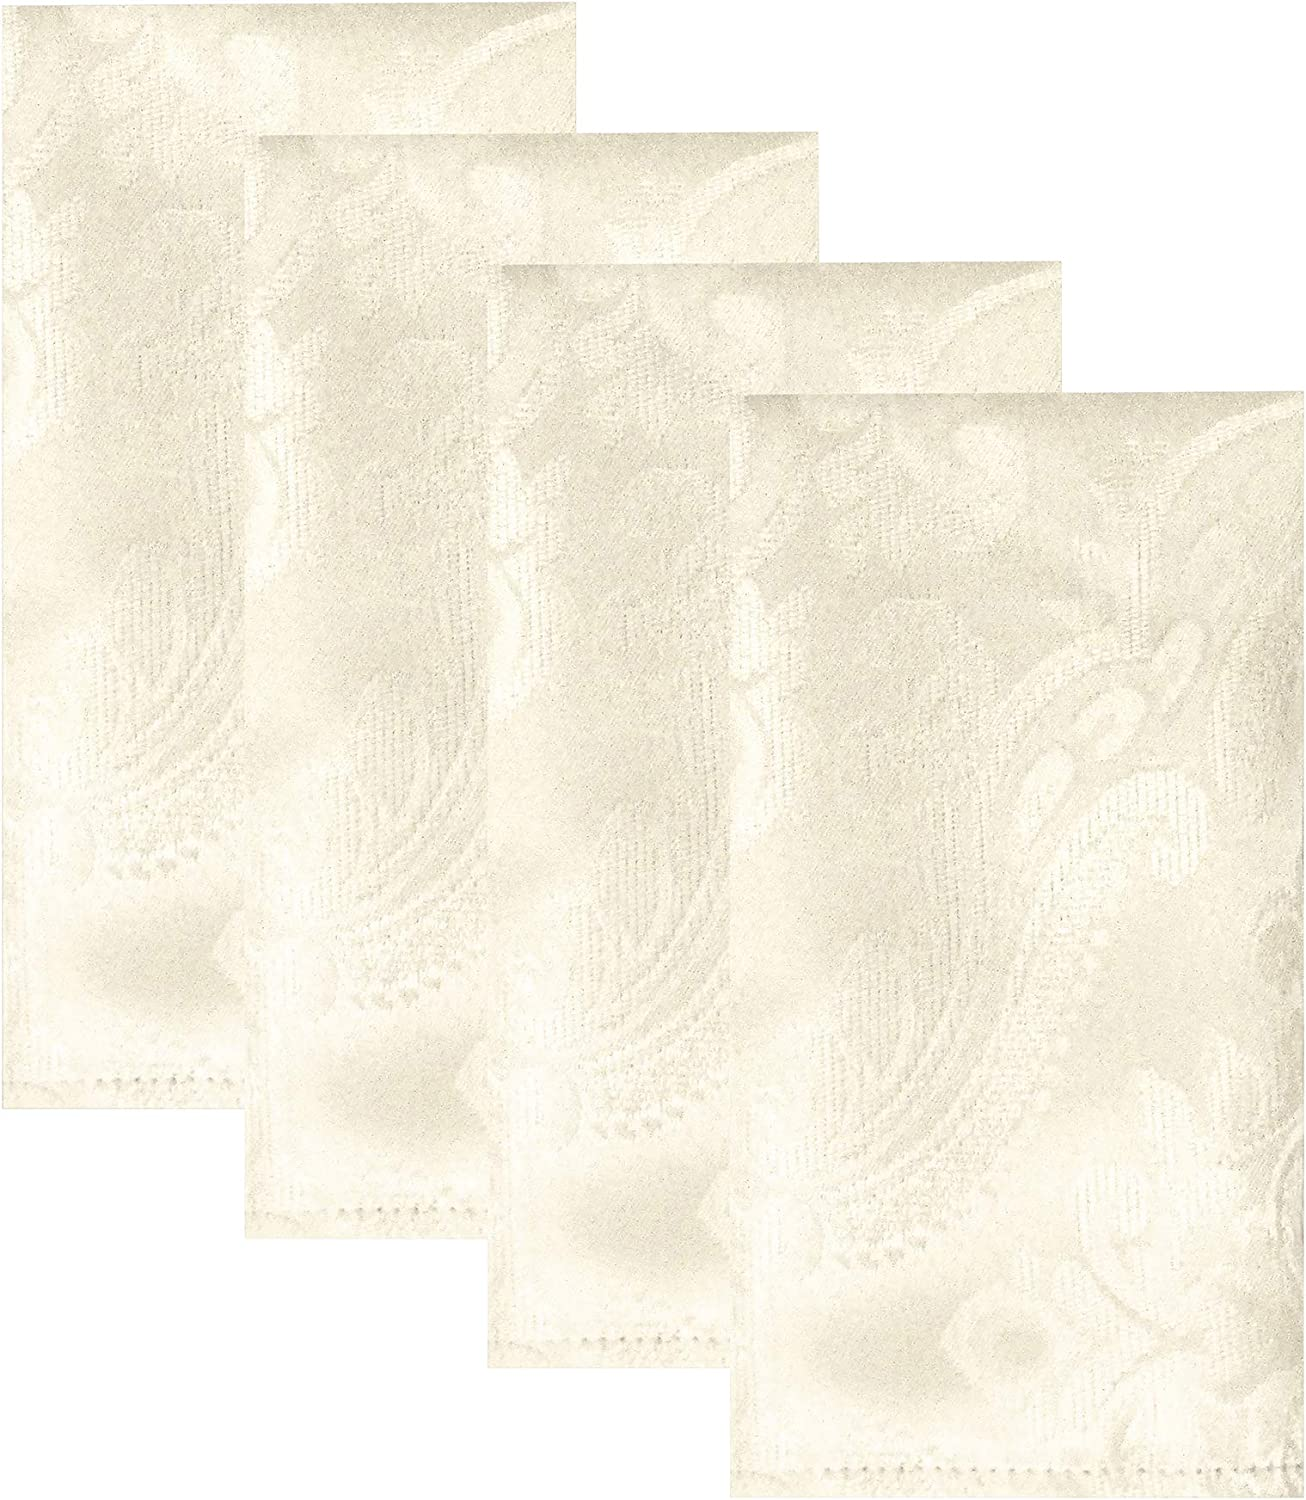 Elrene Home Fashions Caiden Elegance Damask Napkin Set of 4, 17